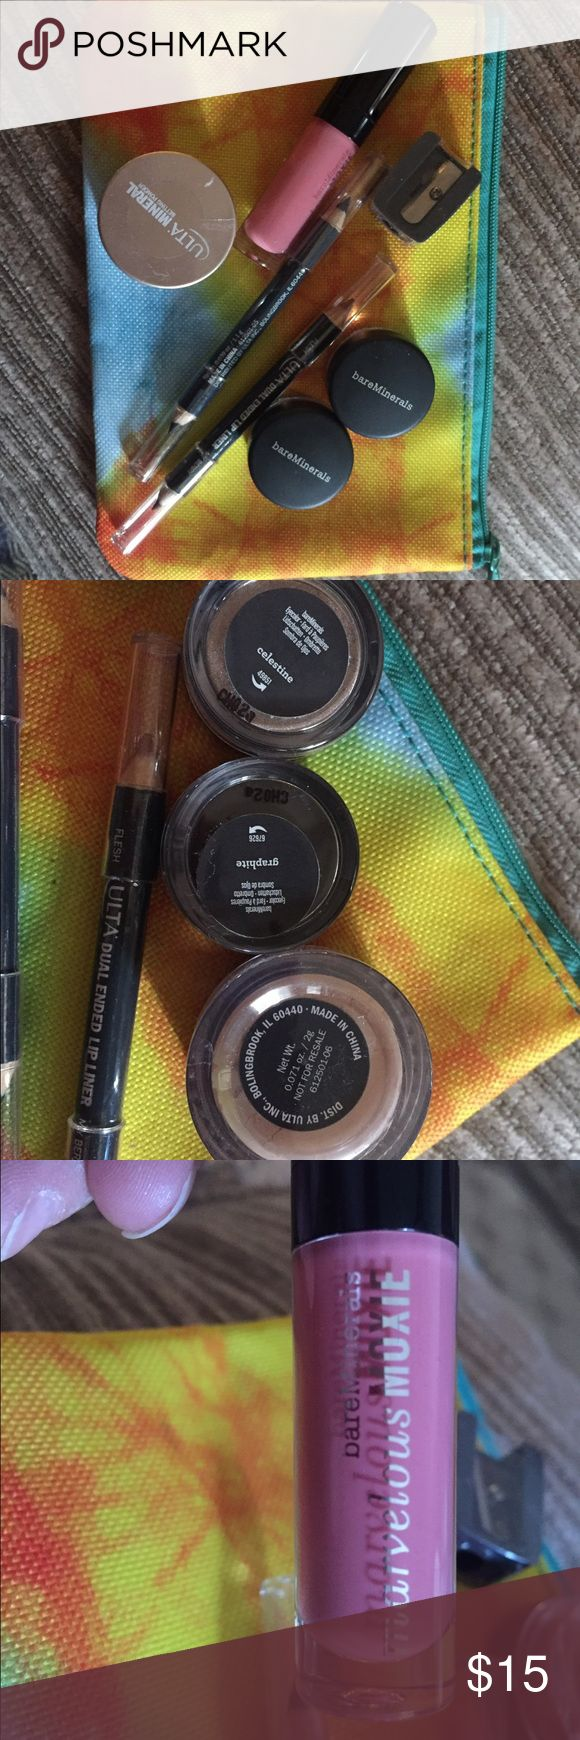 IPSY Bag and Bare Minerals and Ulta Bundle!!🎉 IPSY Bag and NEW Beauty Bundle Eyes, Lips, and Face---2 Bare Minerals Eye Shadows--graphite and Celestine; Bare Minerals Marvelous Moxie gloss--Rebel color; Ulta Mineral Setting Poweder; Ulta Sharpener; Ulta Lip Liner pencil--flesh and berry; Ulta double ended eyeliner blackout and cobalt all new!!!🎉🎉🎉 bareMinerals Makeup